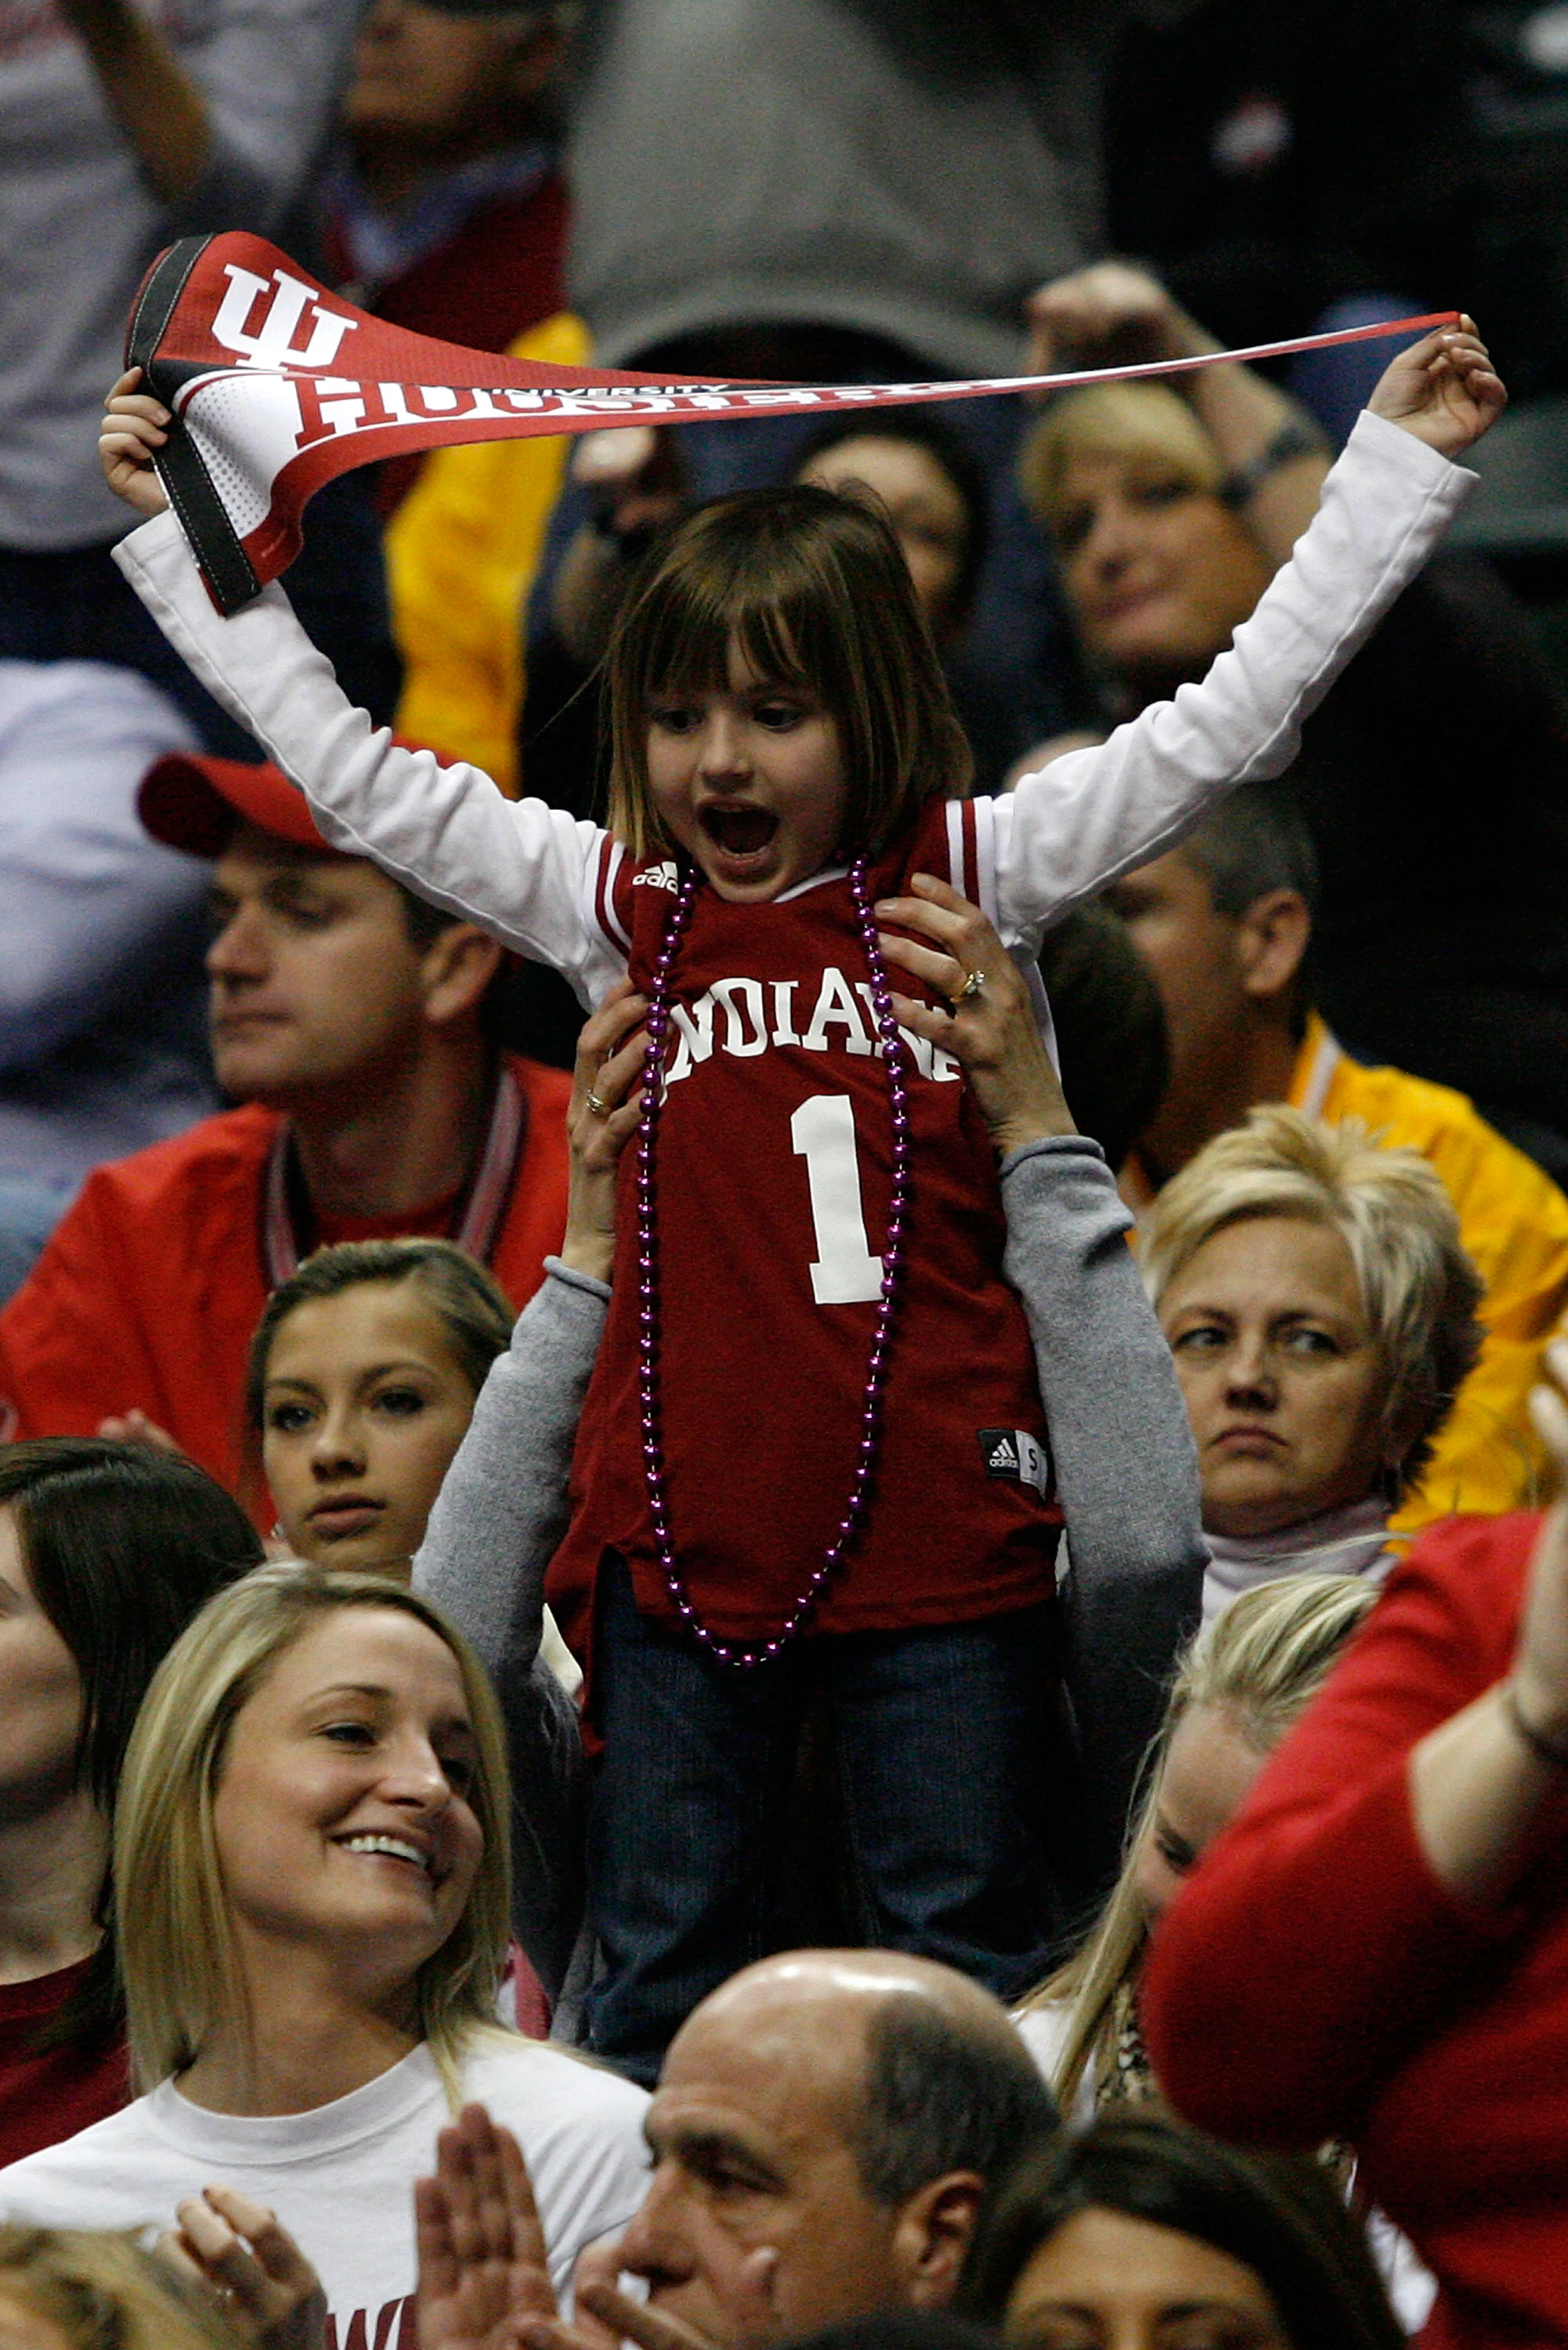 INDIANAPOLIS, IN - MARCH 10:  A young fan supports the Indiana Hoosiers against the Penn State Nittany Lions during the first round of the 2011 Big Ten Men's Basketball Tournament at Conseco Fieldhouse on March 10, 2011 in Indianapolis, Indiana.  (Photo b